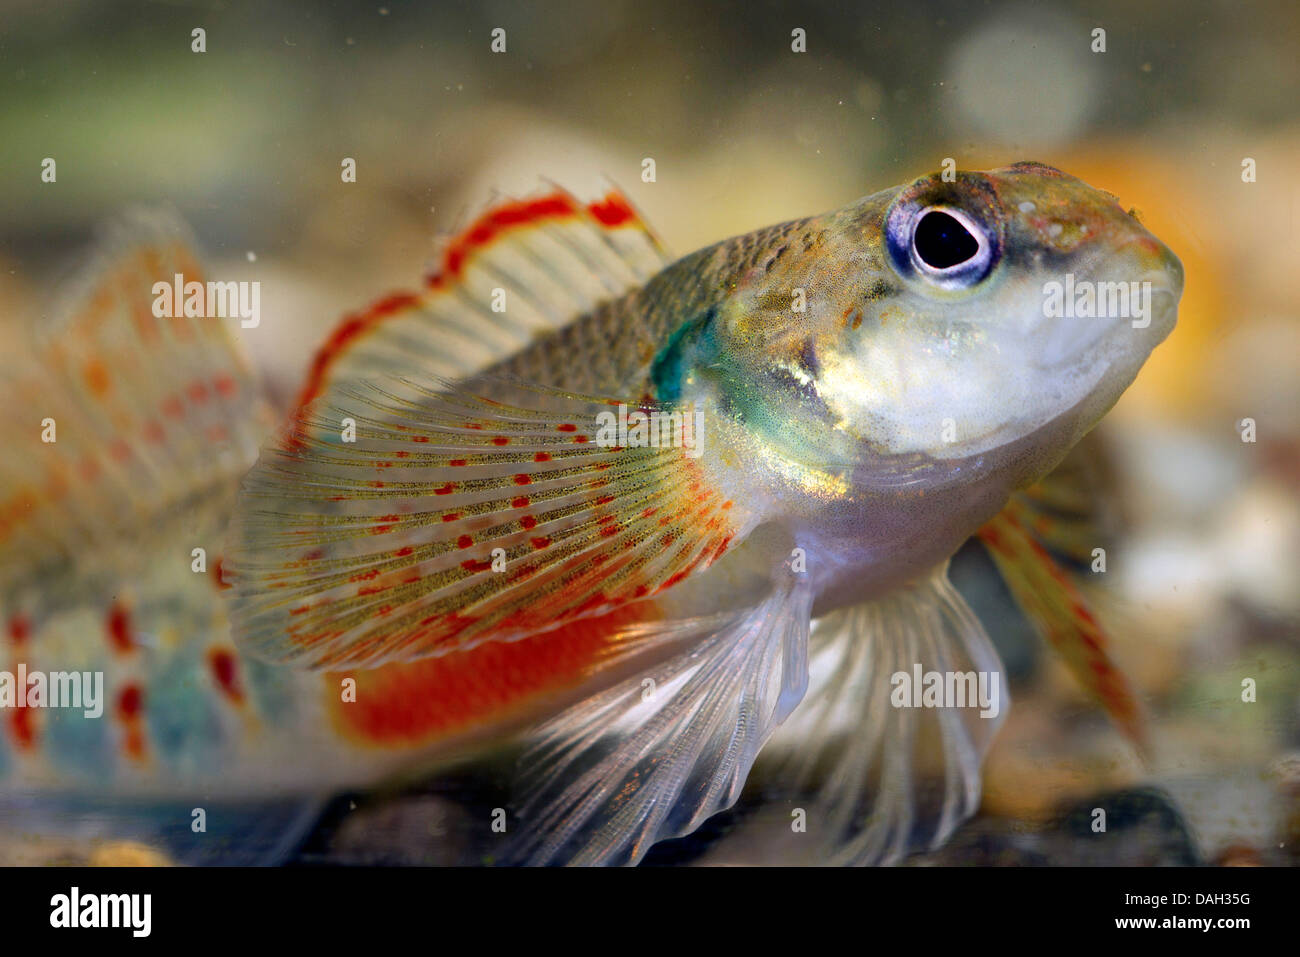 All the Presidents' fish: Five new species named after Obama ...